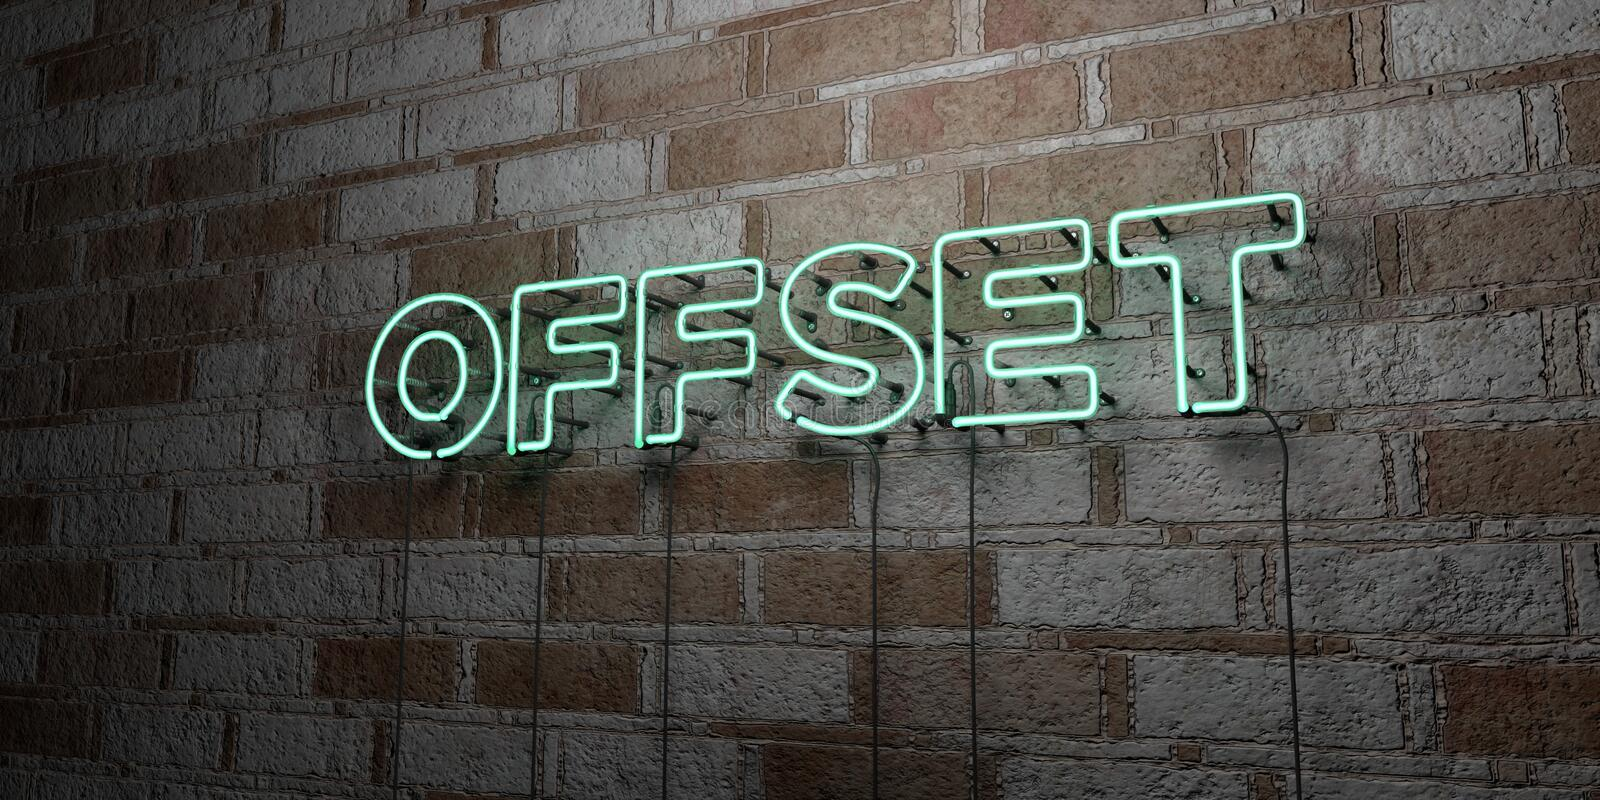 OFFSET - Glowing Neon Sign on stonework wall - 3D rendered royalty free stock illustration. Can be used for online banner ads and direct mailers vector illustration